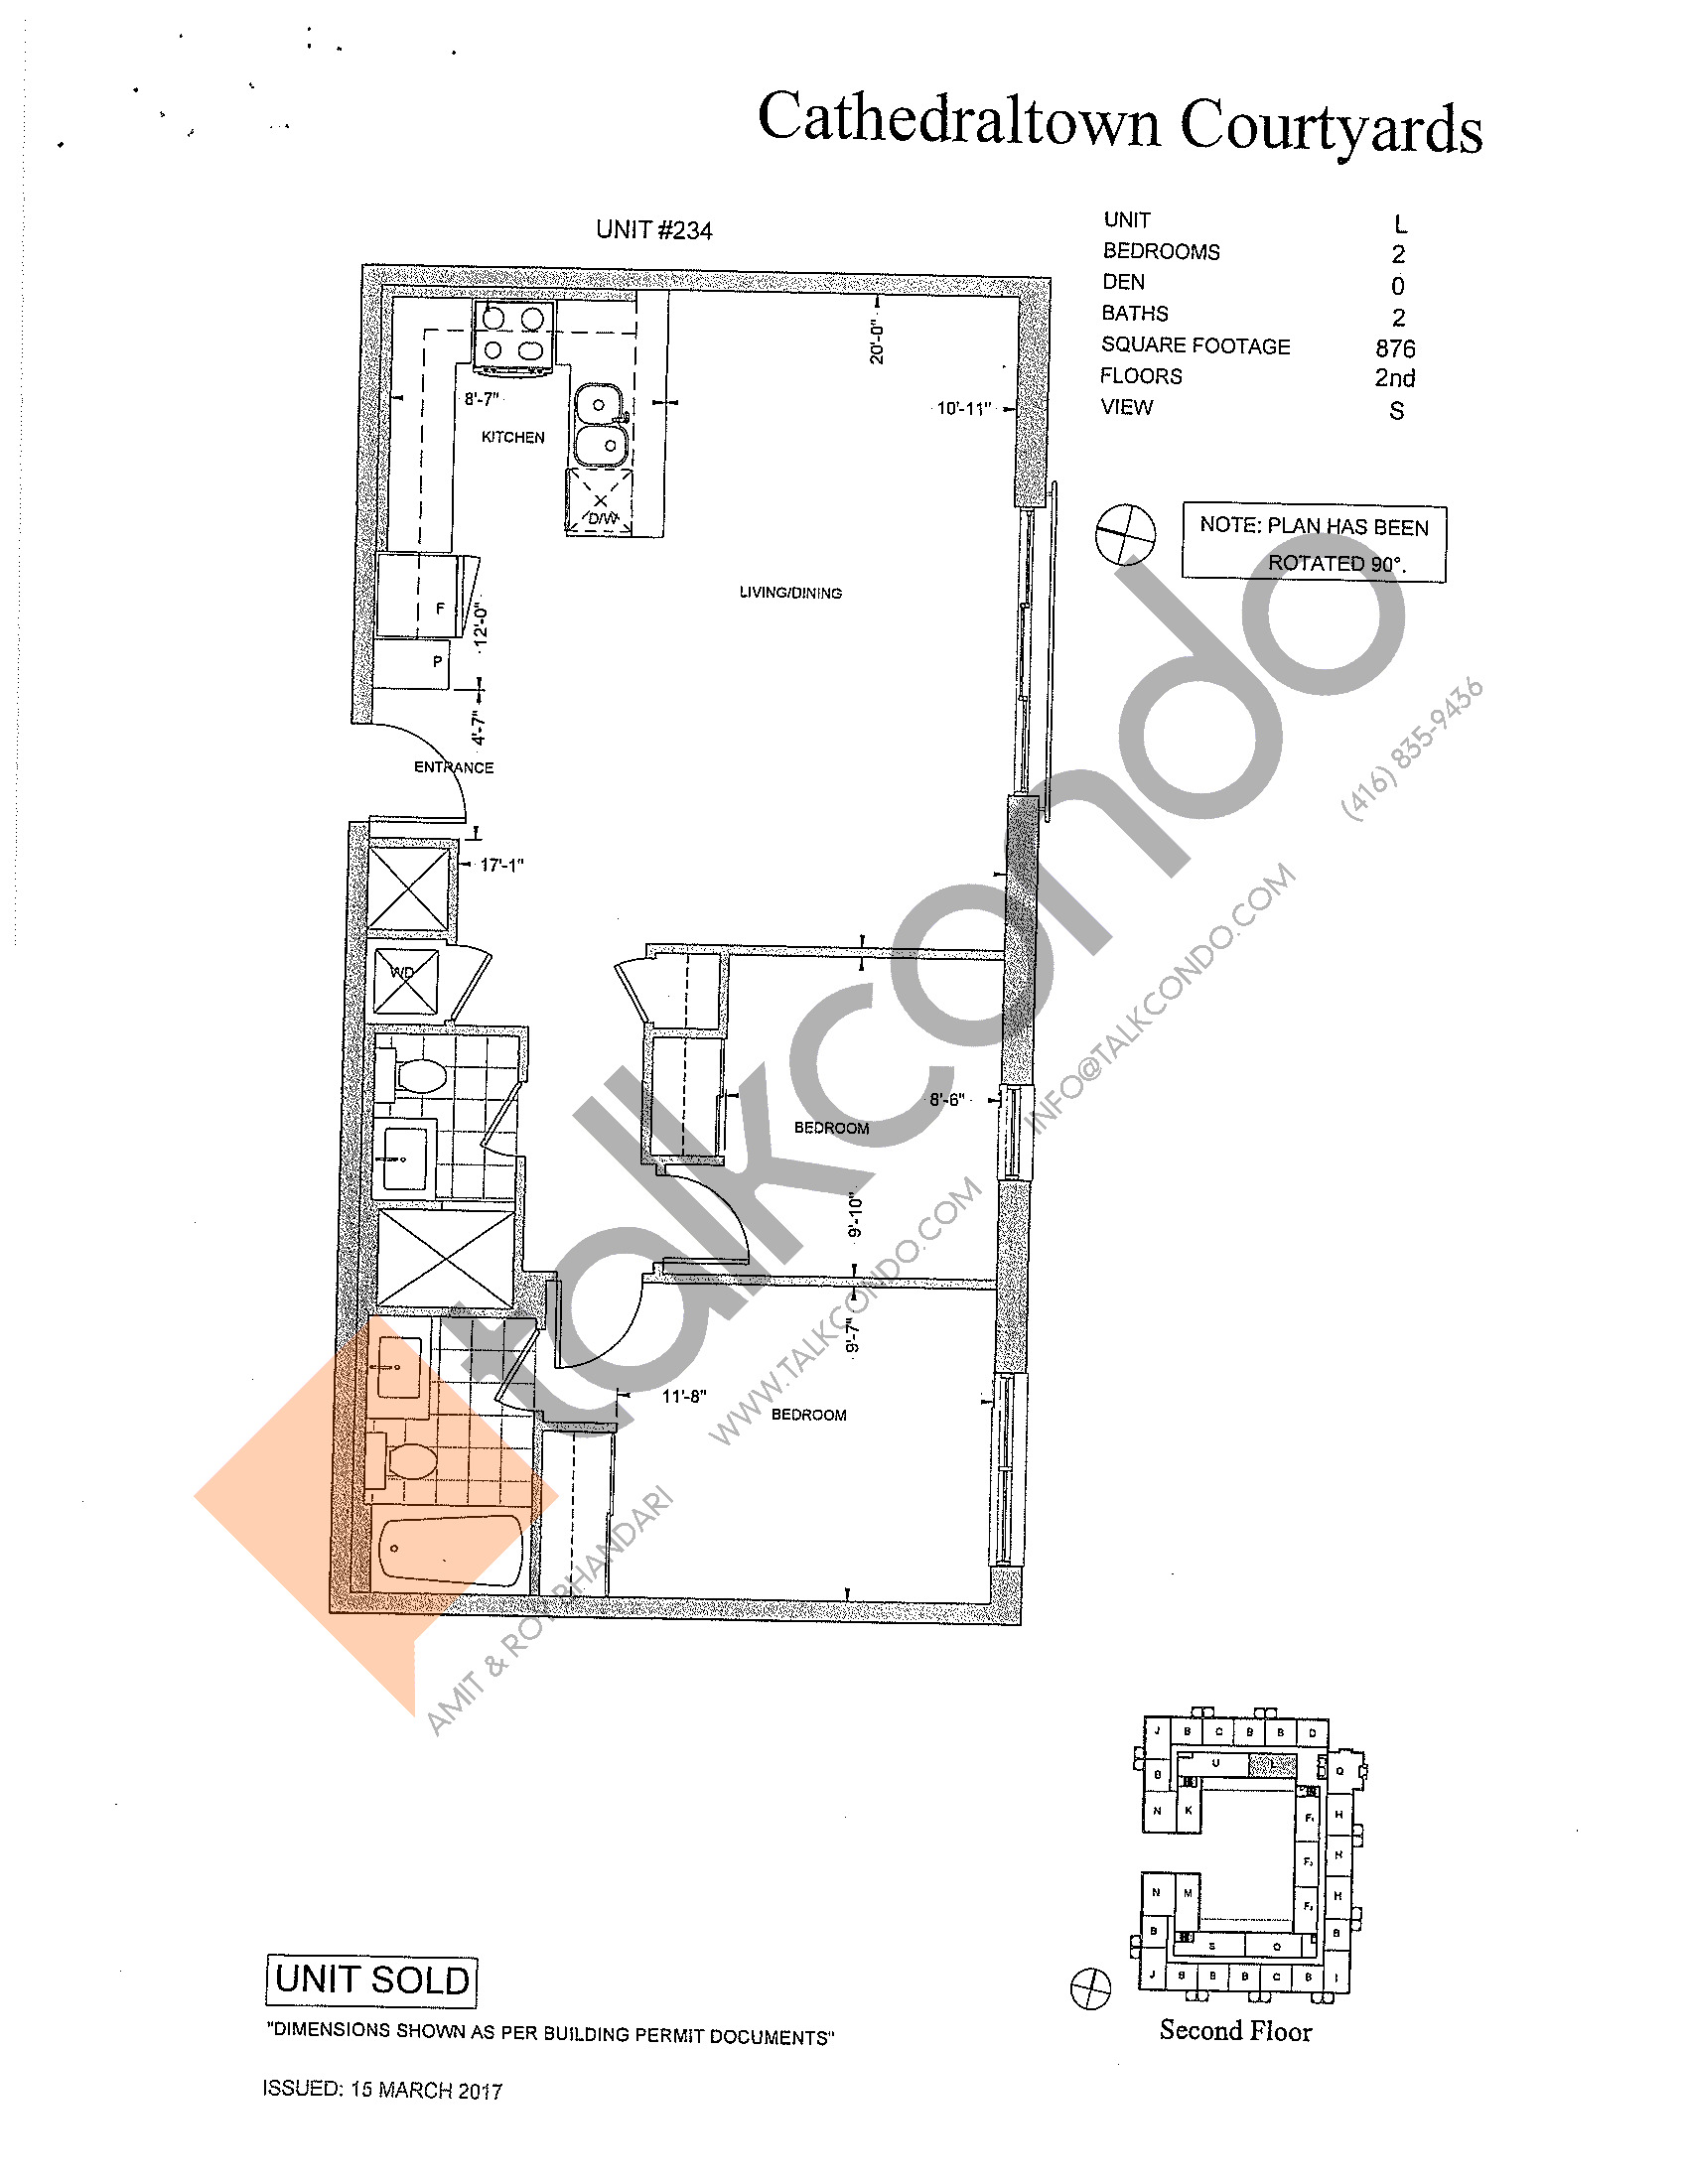 Unit L Floor Plan at The Courtyards at Cathedraltown Condos - 876 sq.ft